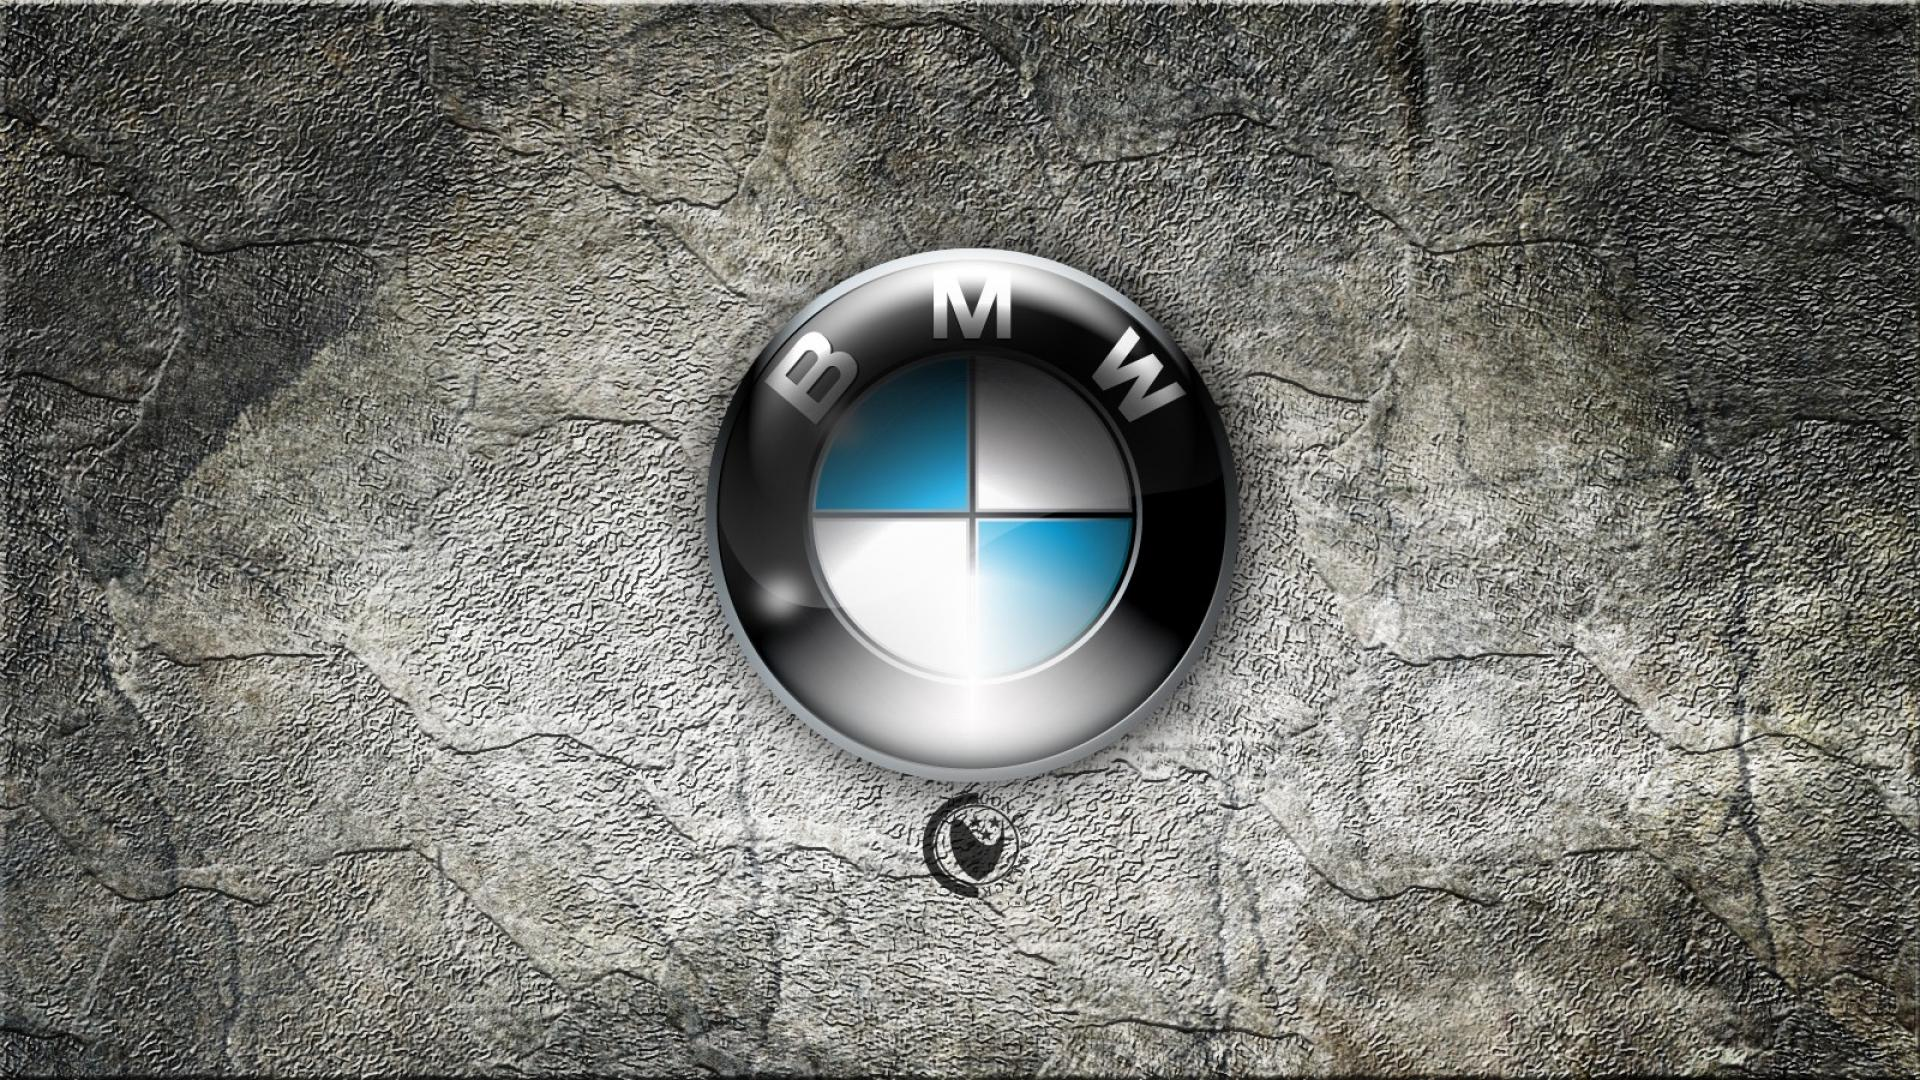 bmw car brand logo hd wallpapers for all resolution free hd 1920x1080